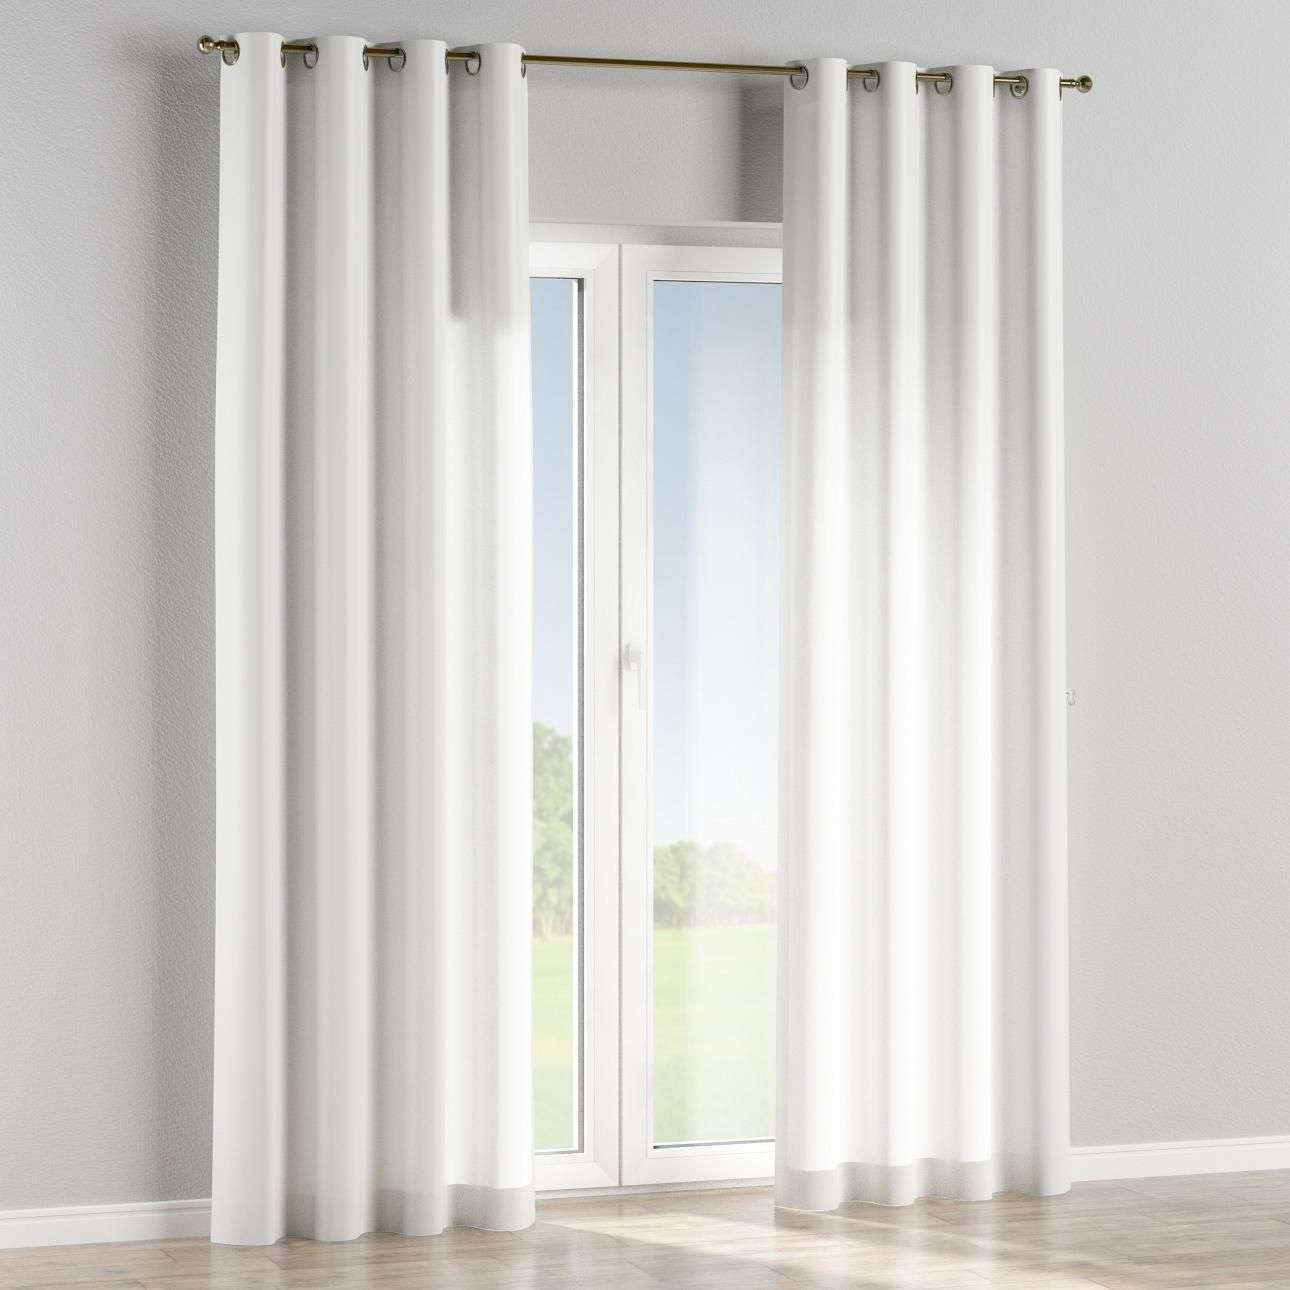 Eyelet lined curtains in collection Bristol, fabric: 125-48